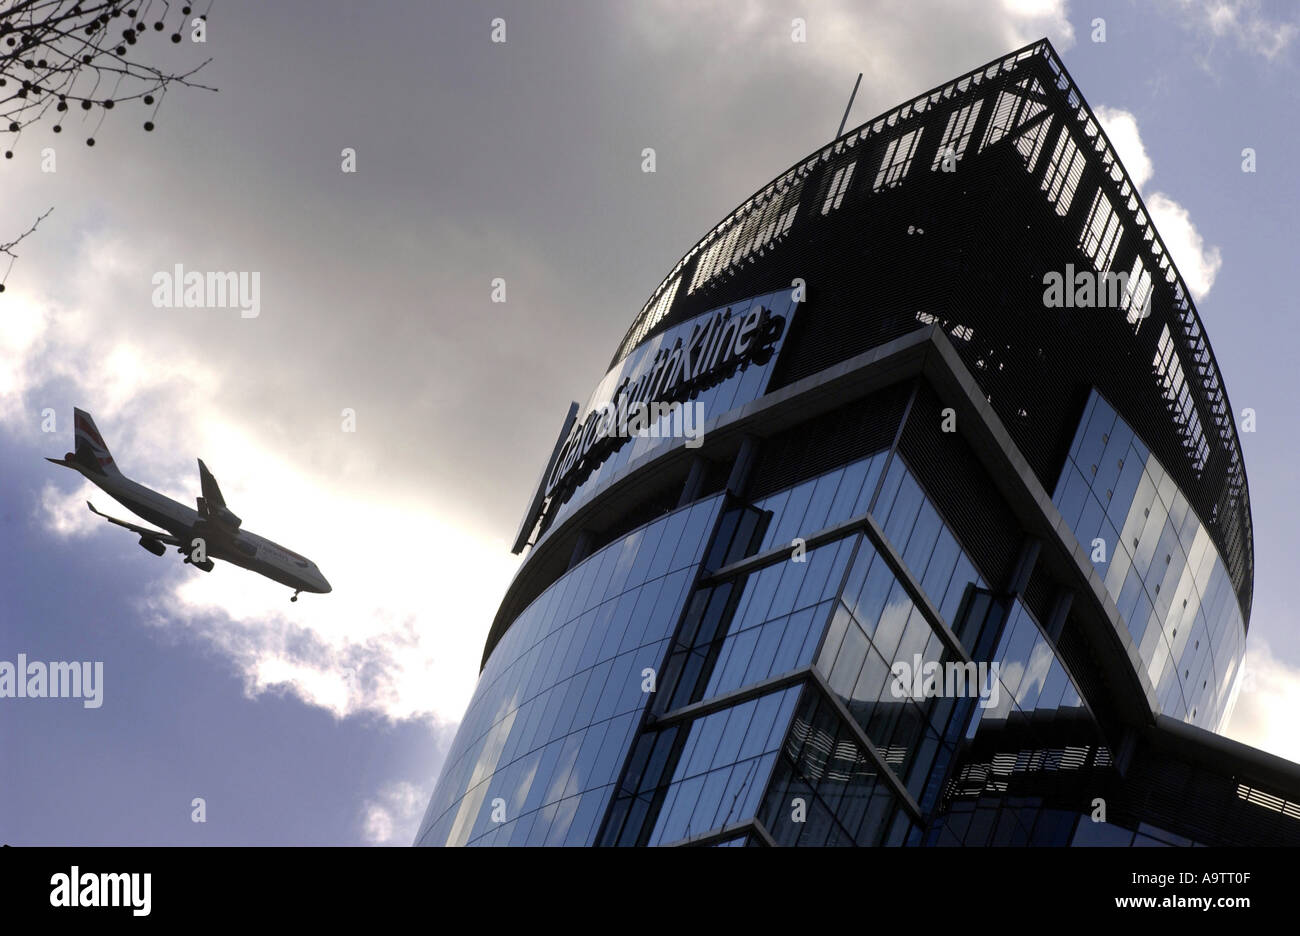 GlaxoSmithKline HQ in UK with passing aircraft - Stock Image